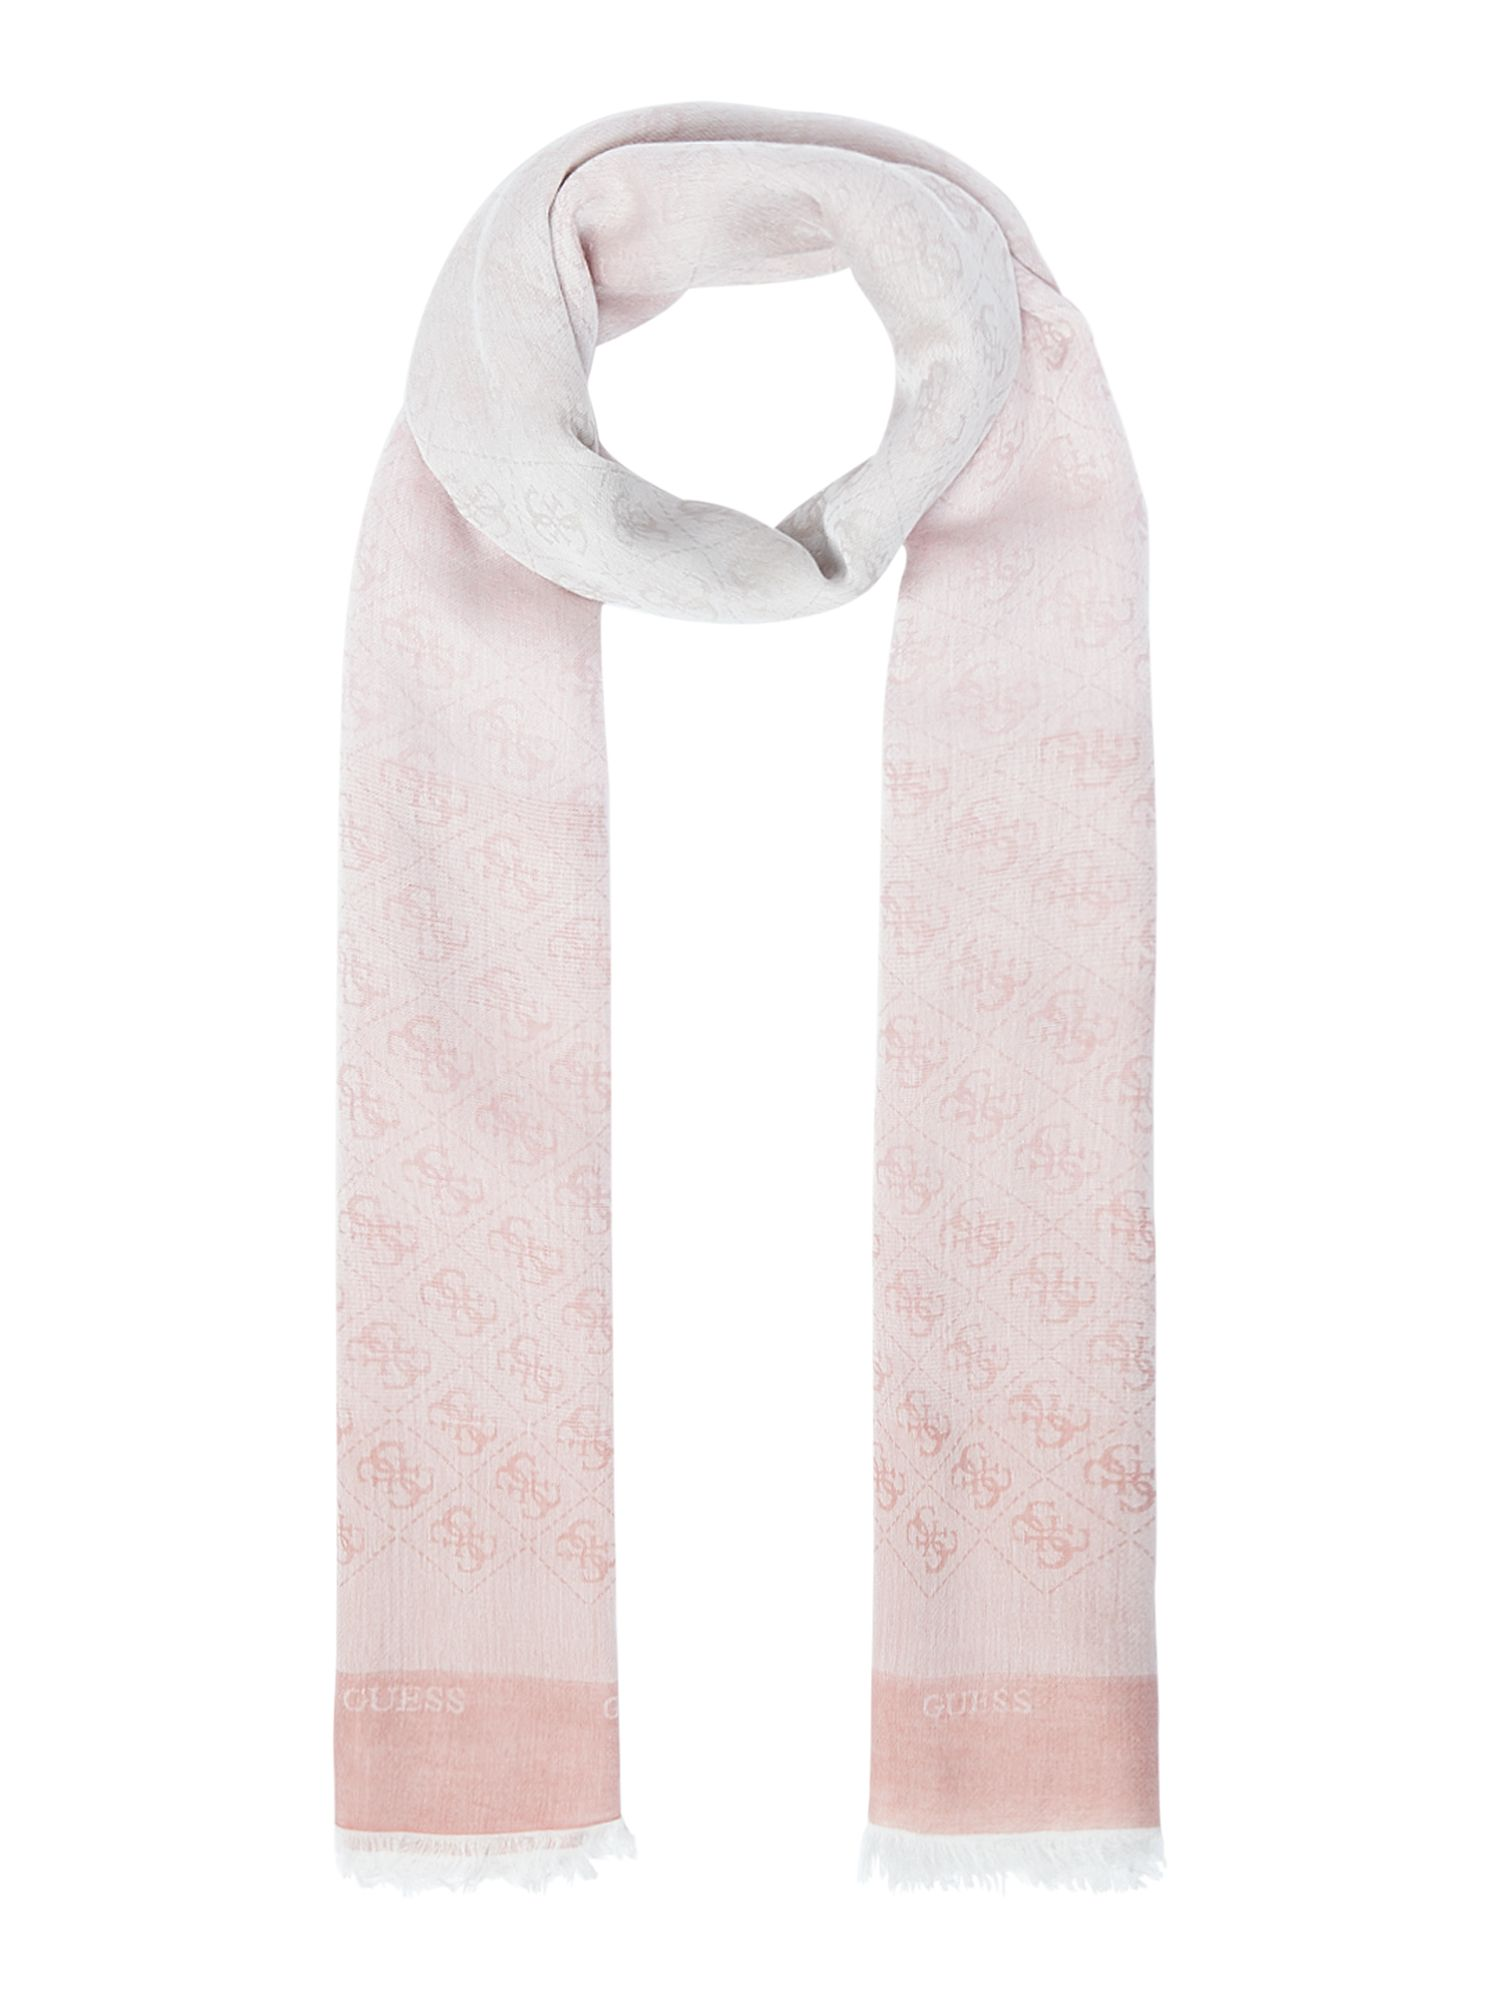 Guess All over g logo long scarf, Pink